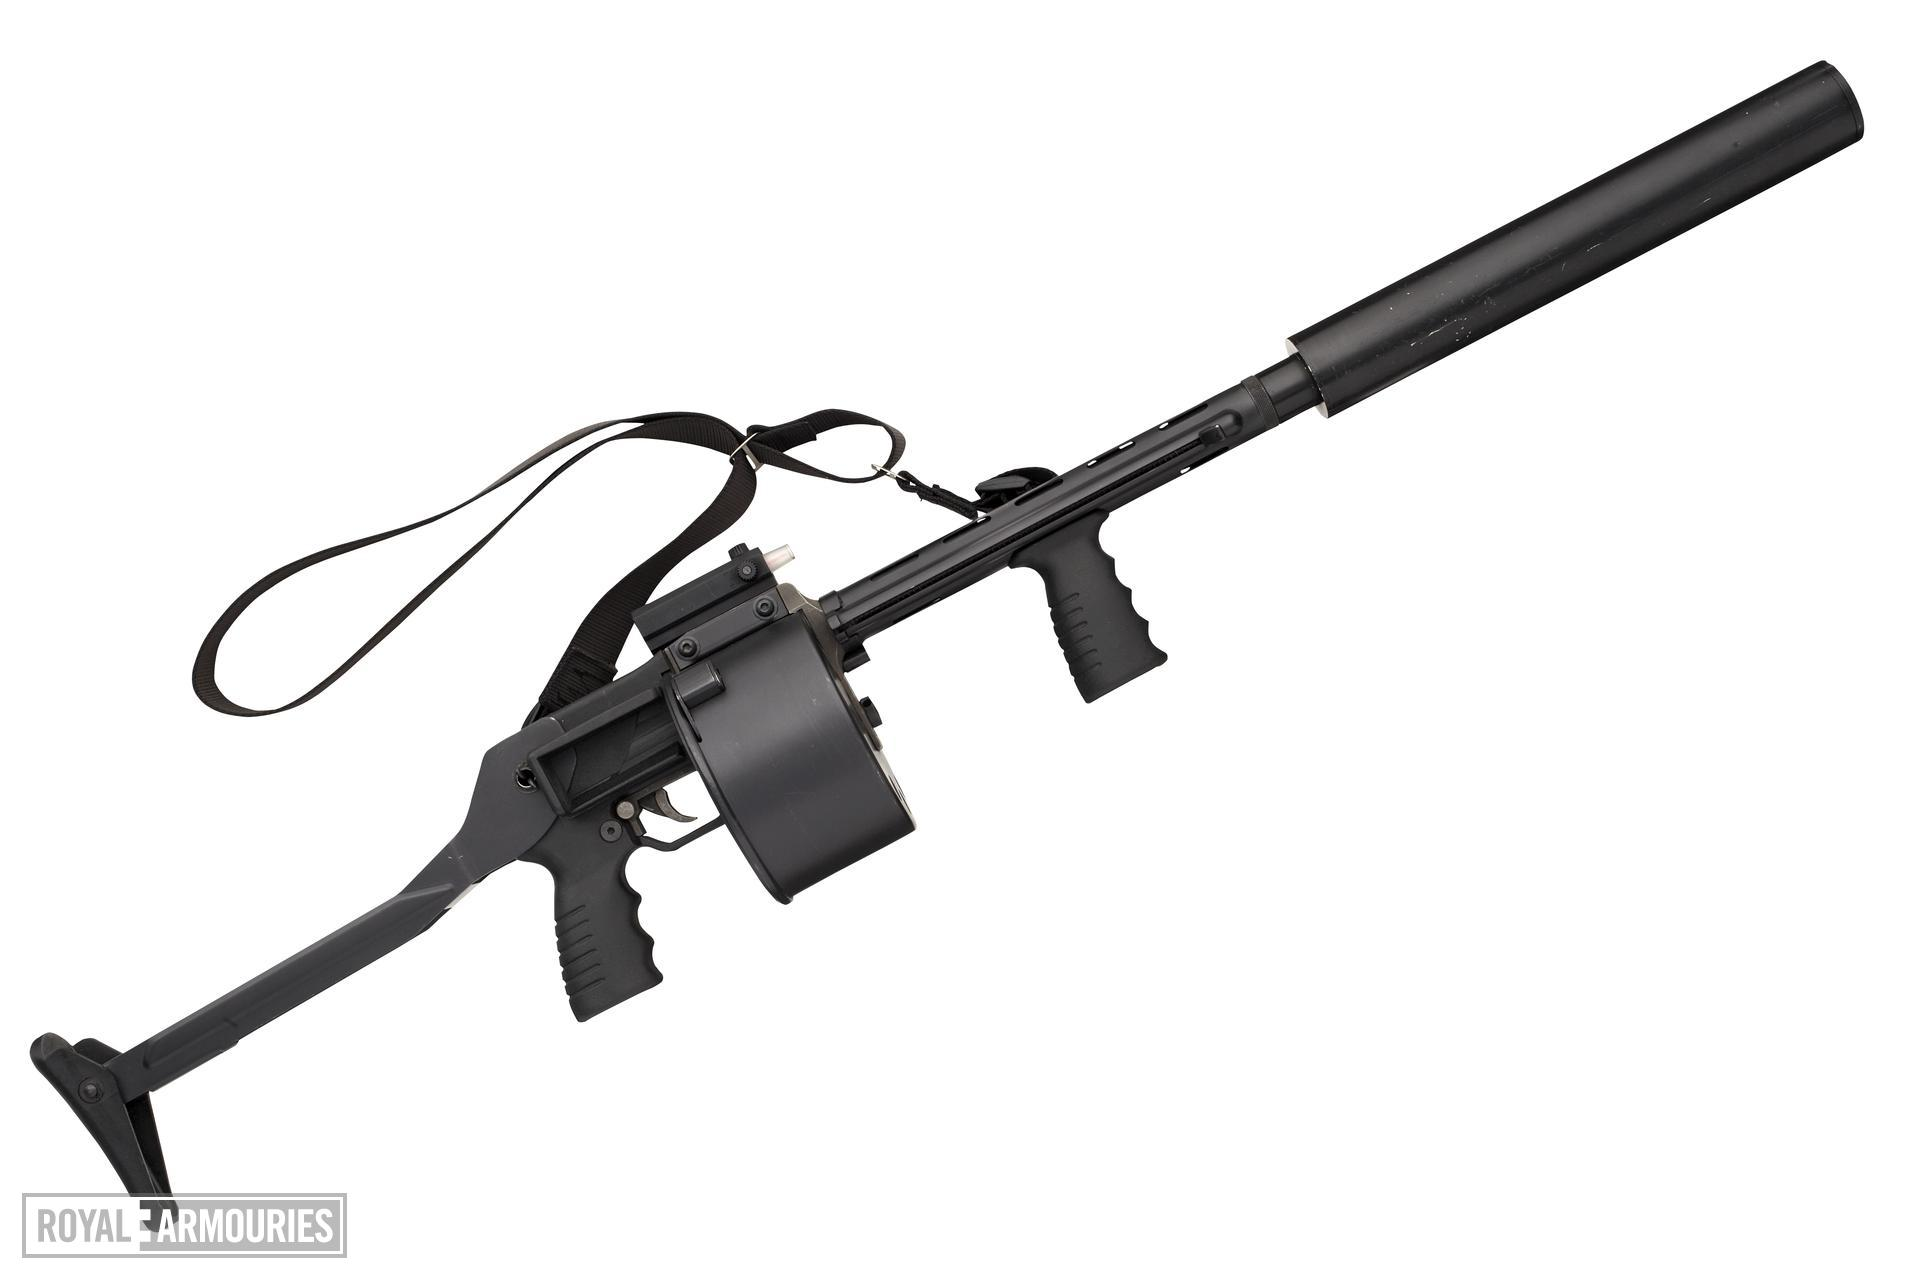 Centrefire repeating shotgun - Protecta With double action mechanism and rotary drum feed